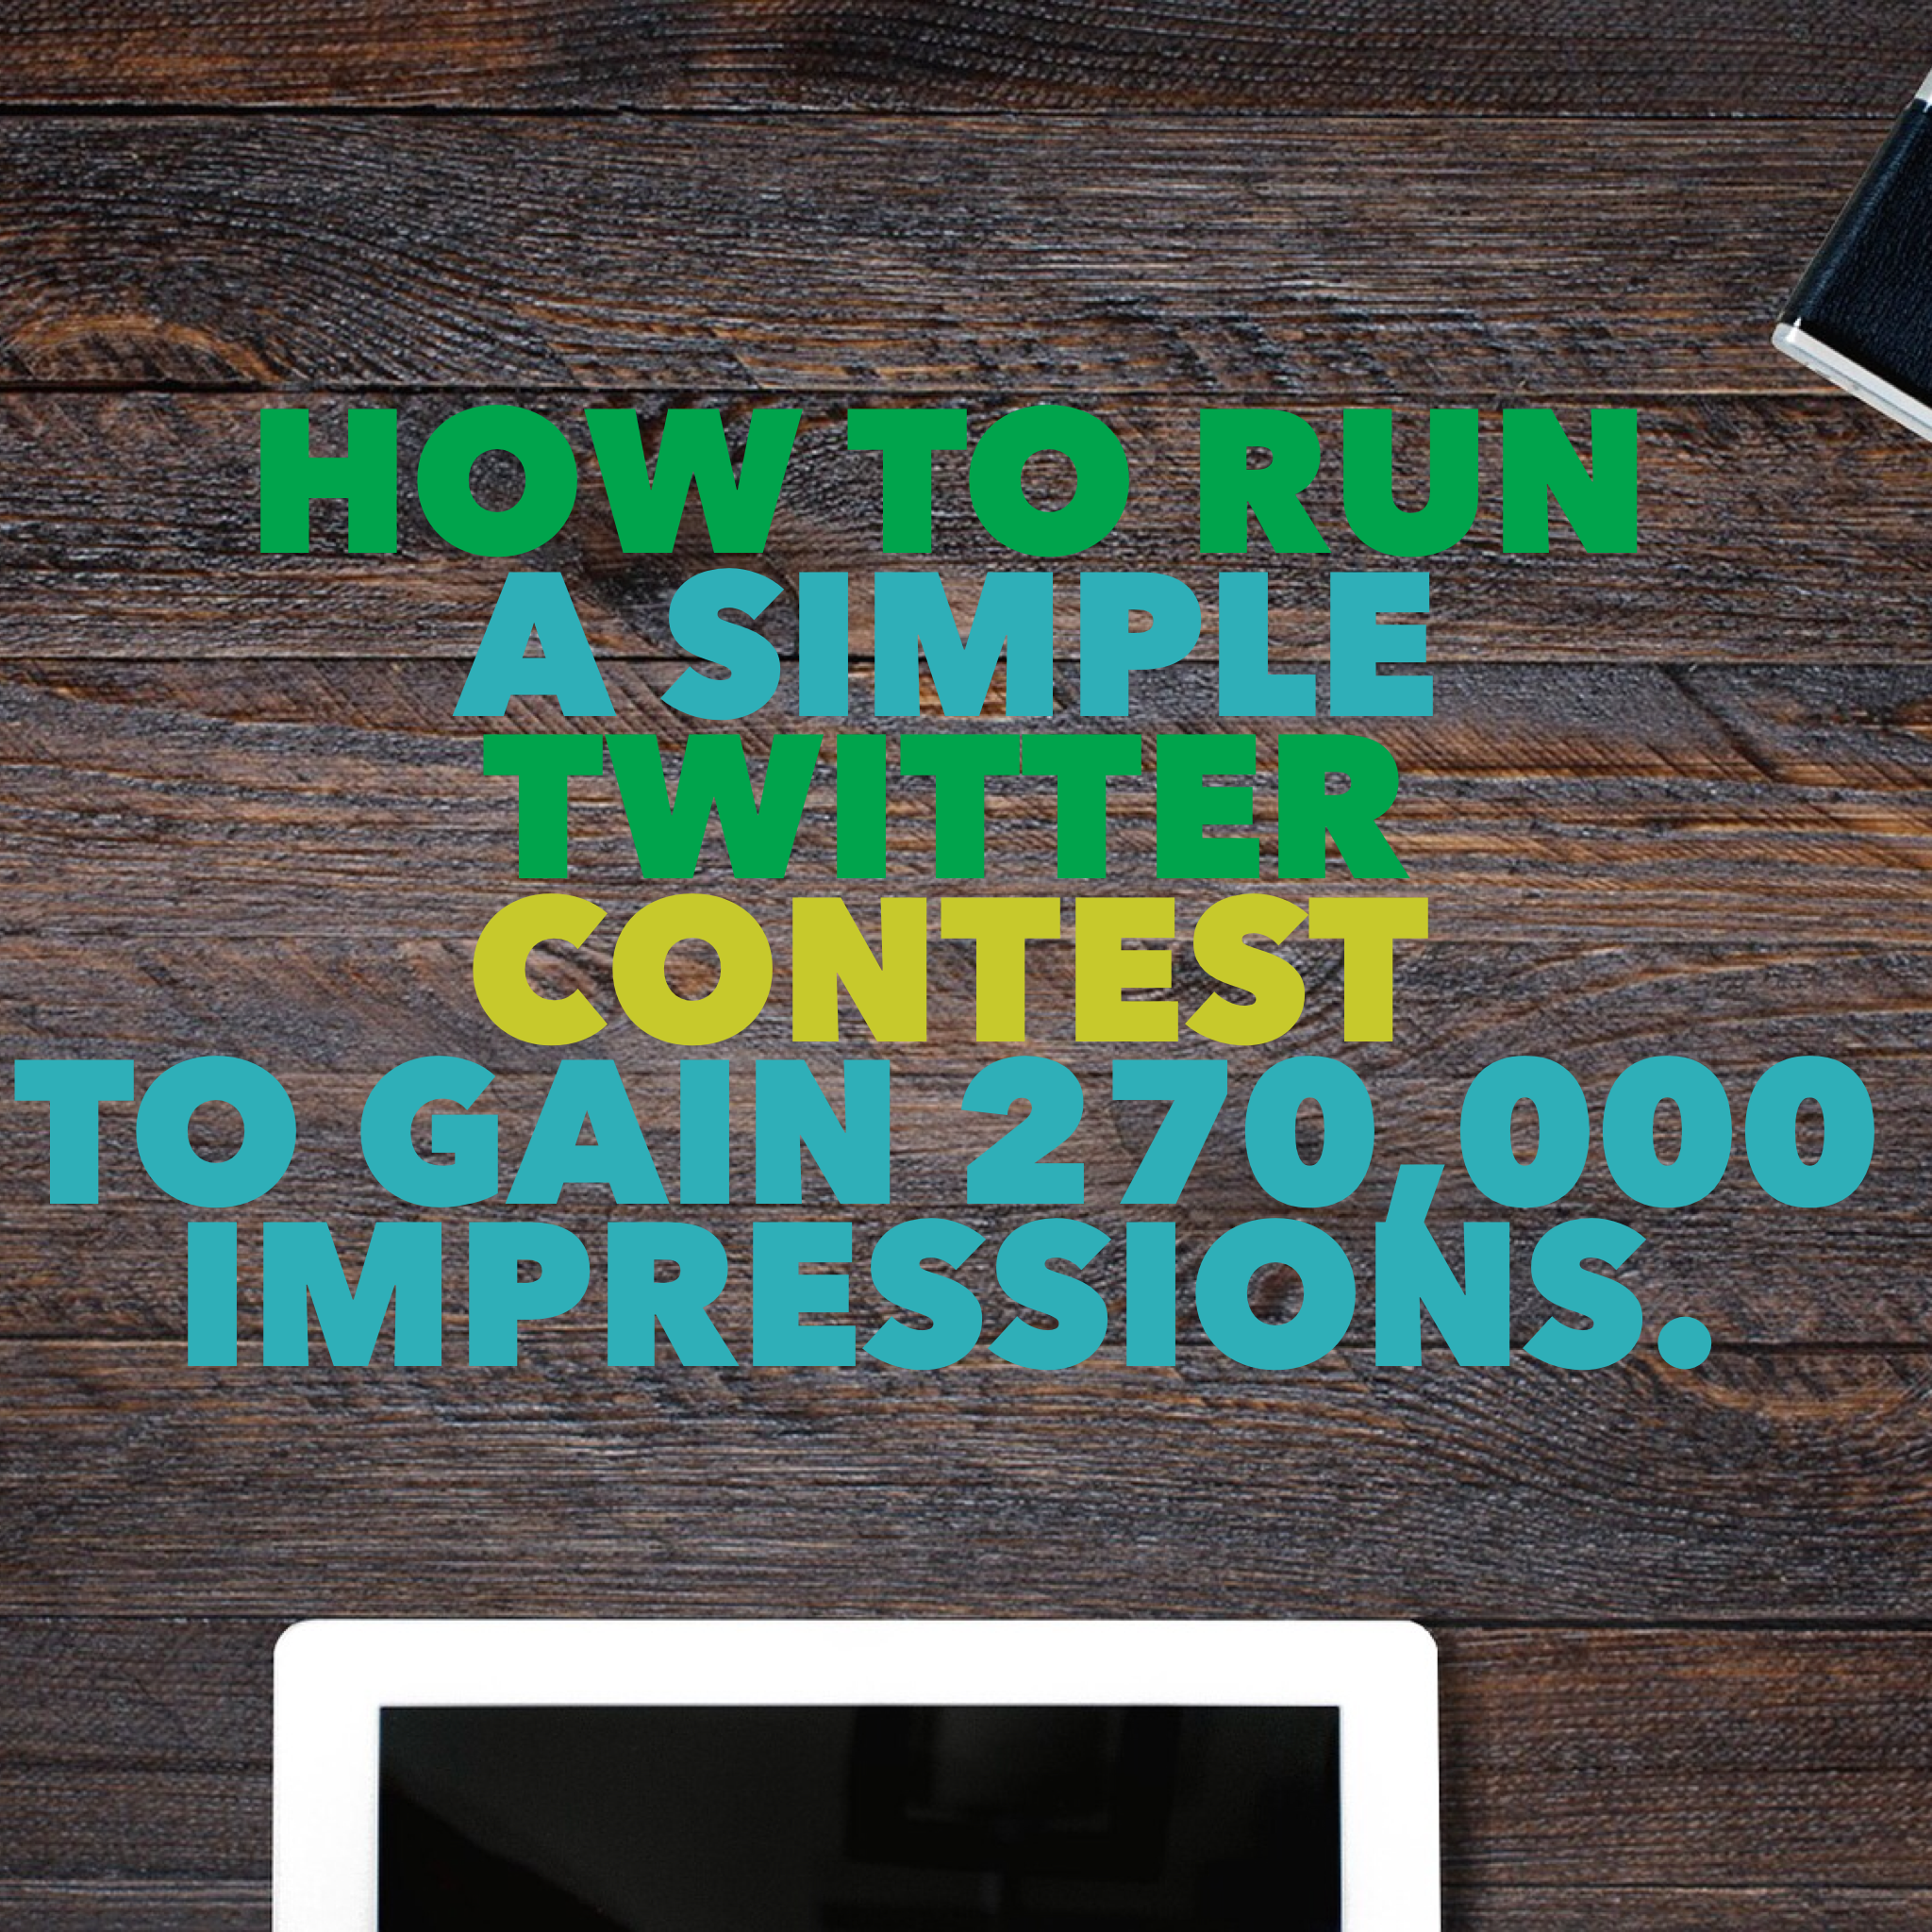 Twitter contest for Small Business owners